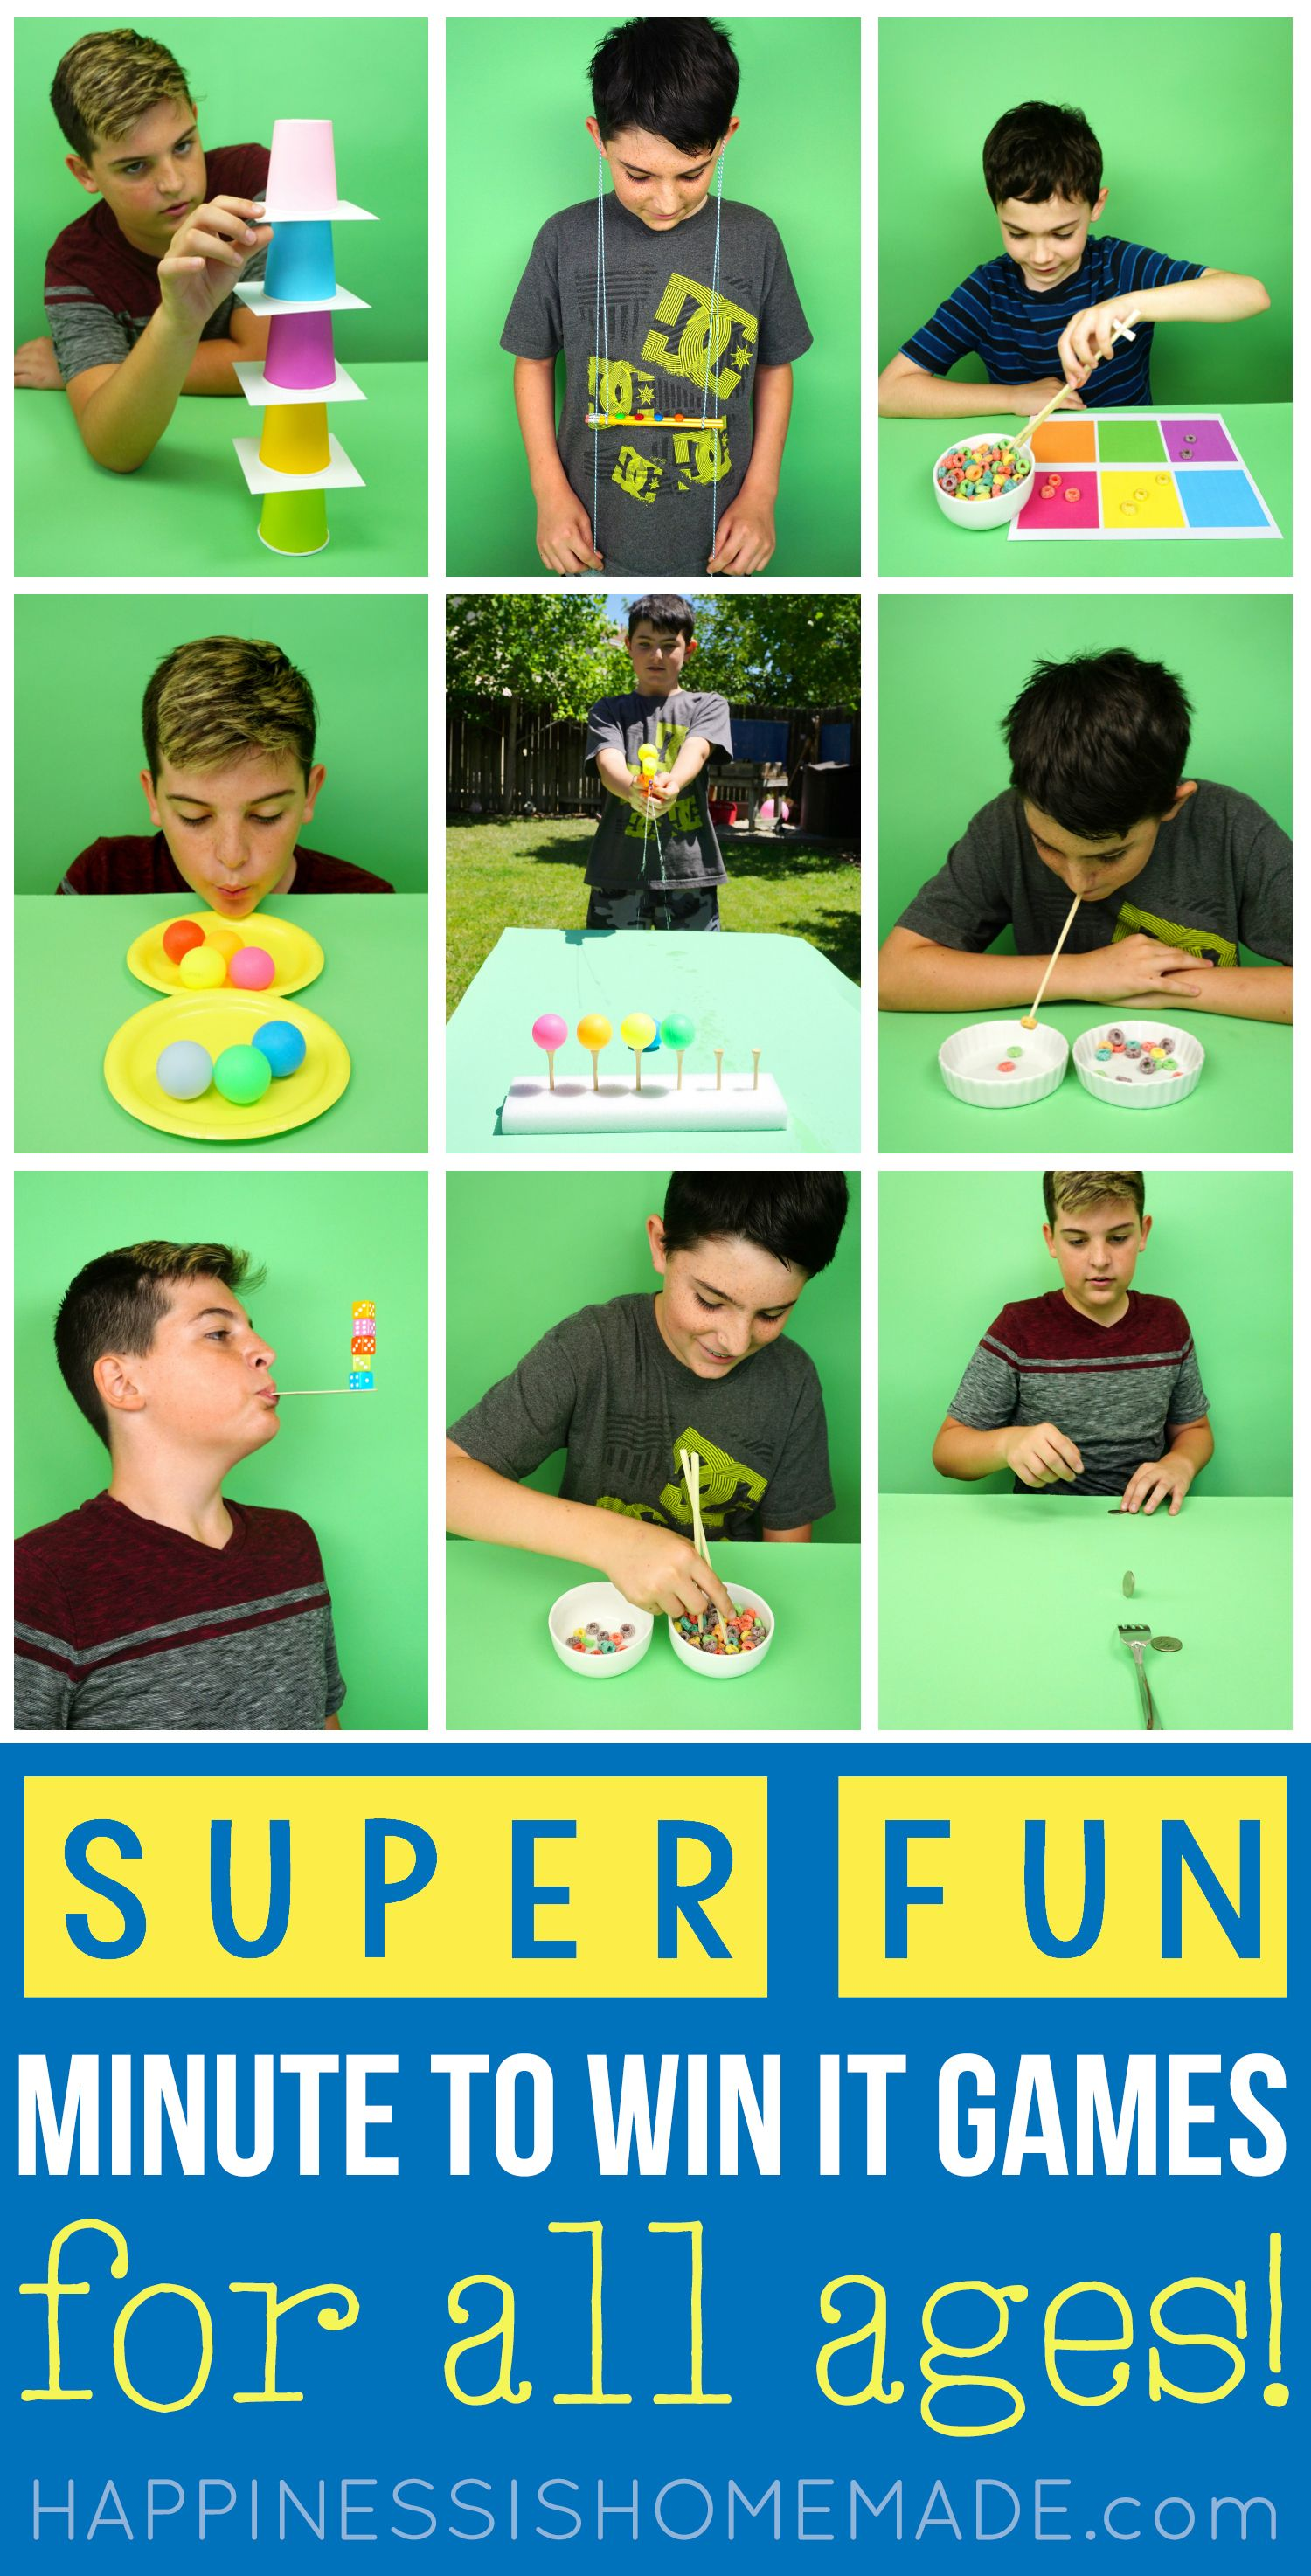 Fun Minute To Win It Games That Are Great For Kids, Teens, Adults,  Groups Of All -7099